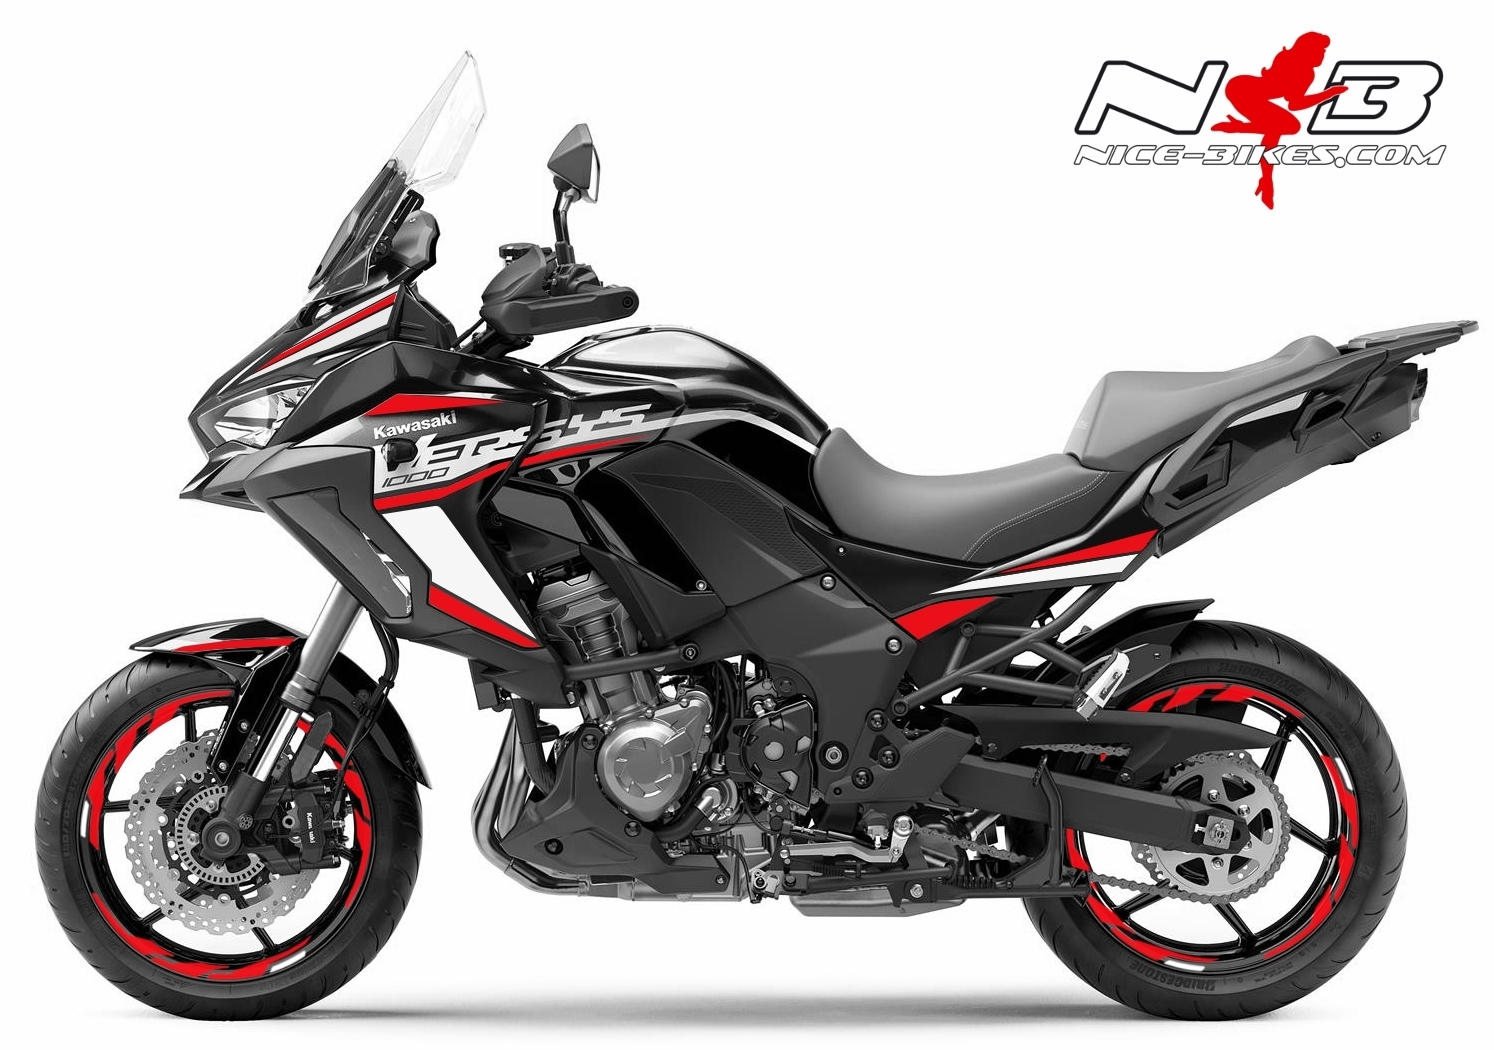 Foliendesign Kawasaki Versys 1000 Bj. 2020 Racing Red